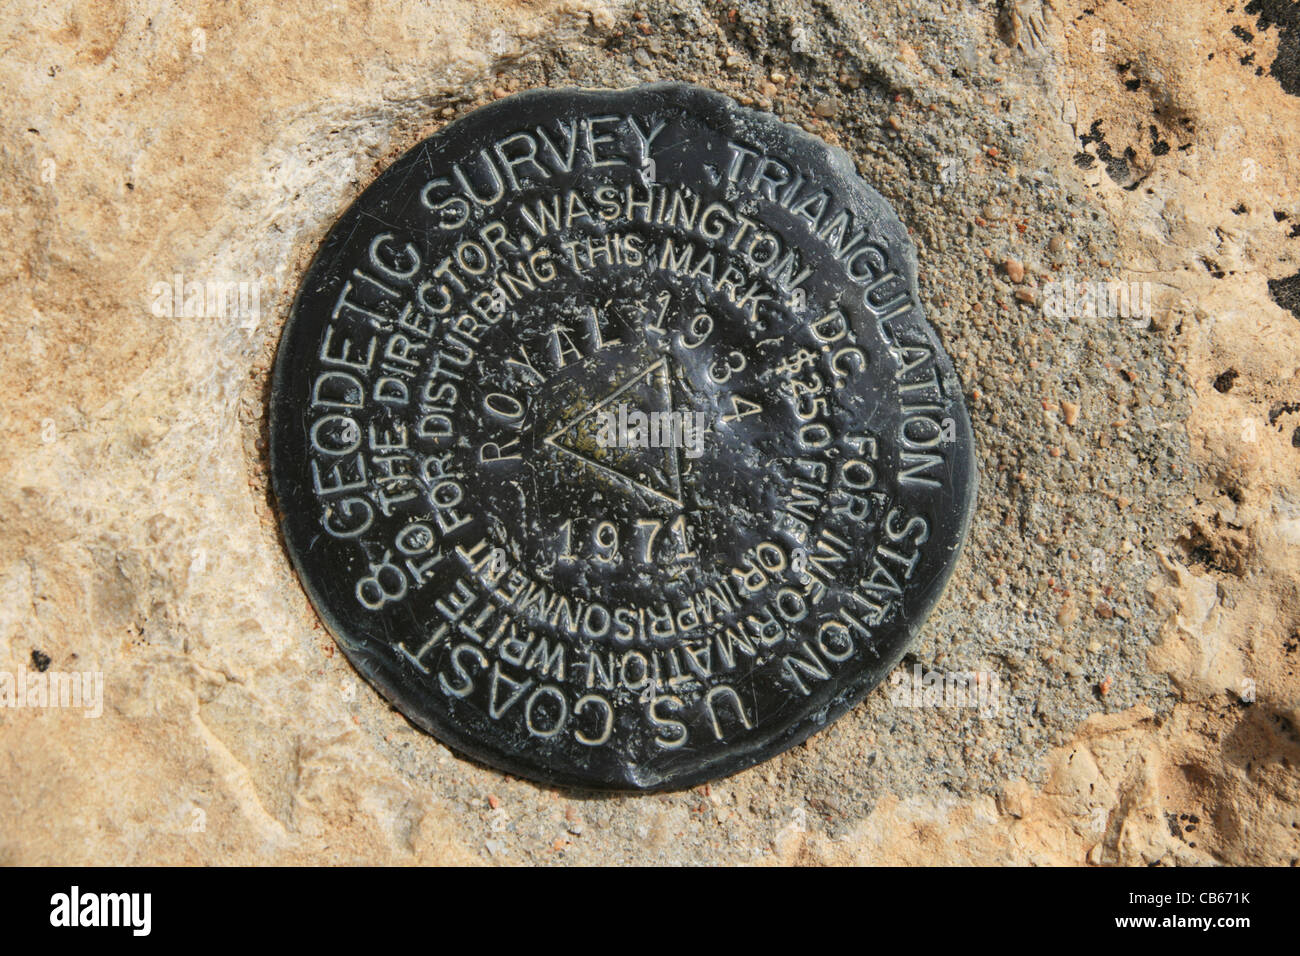 USGS benchmark at Cape Royal on the north rim of the Grand Canyon, Arizona - Stock Image